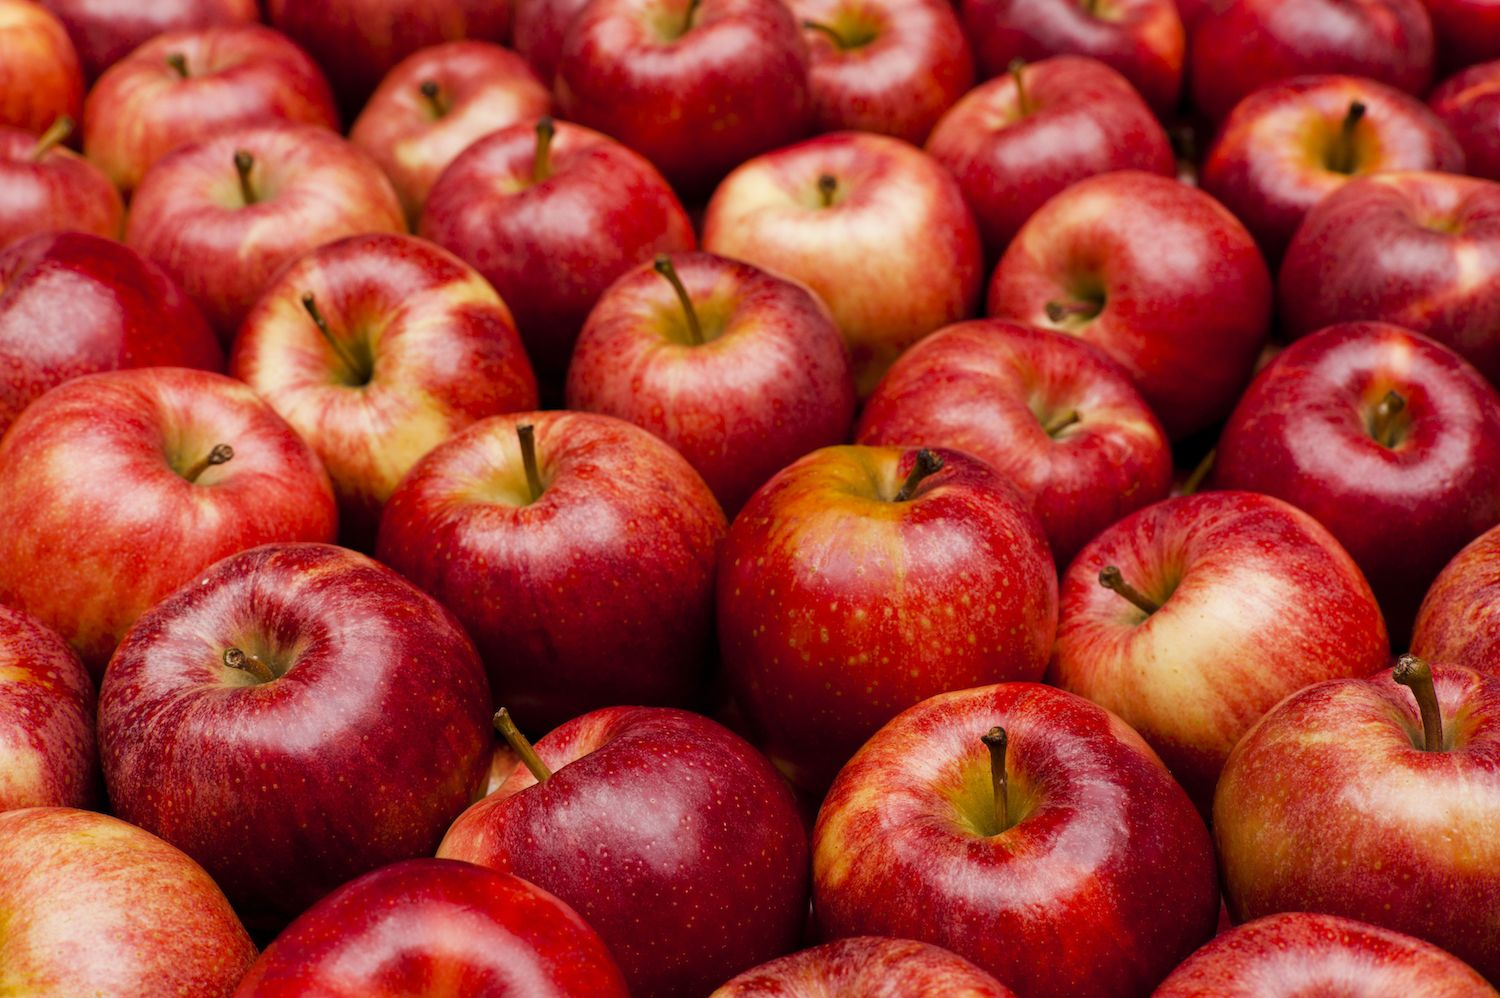 What Are Those Tiny Spots On Apples Mental Floss